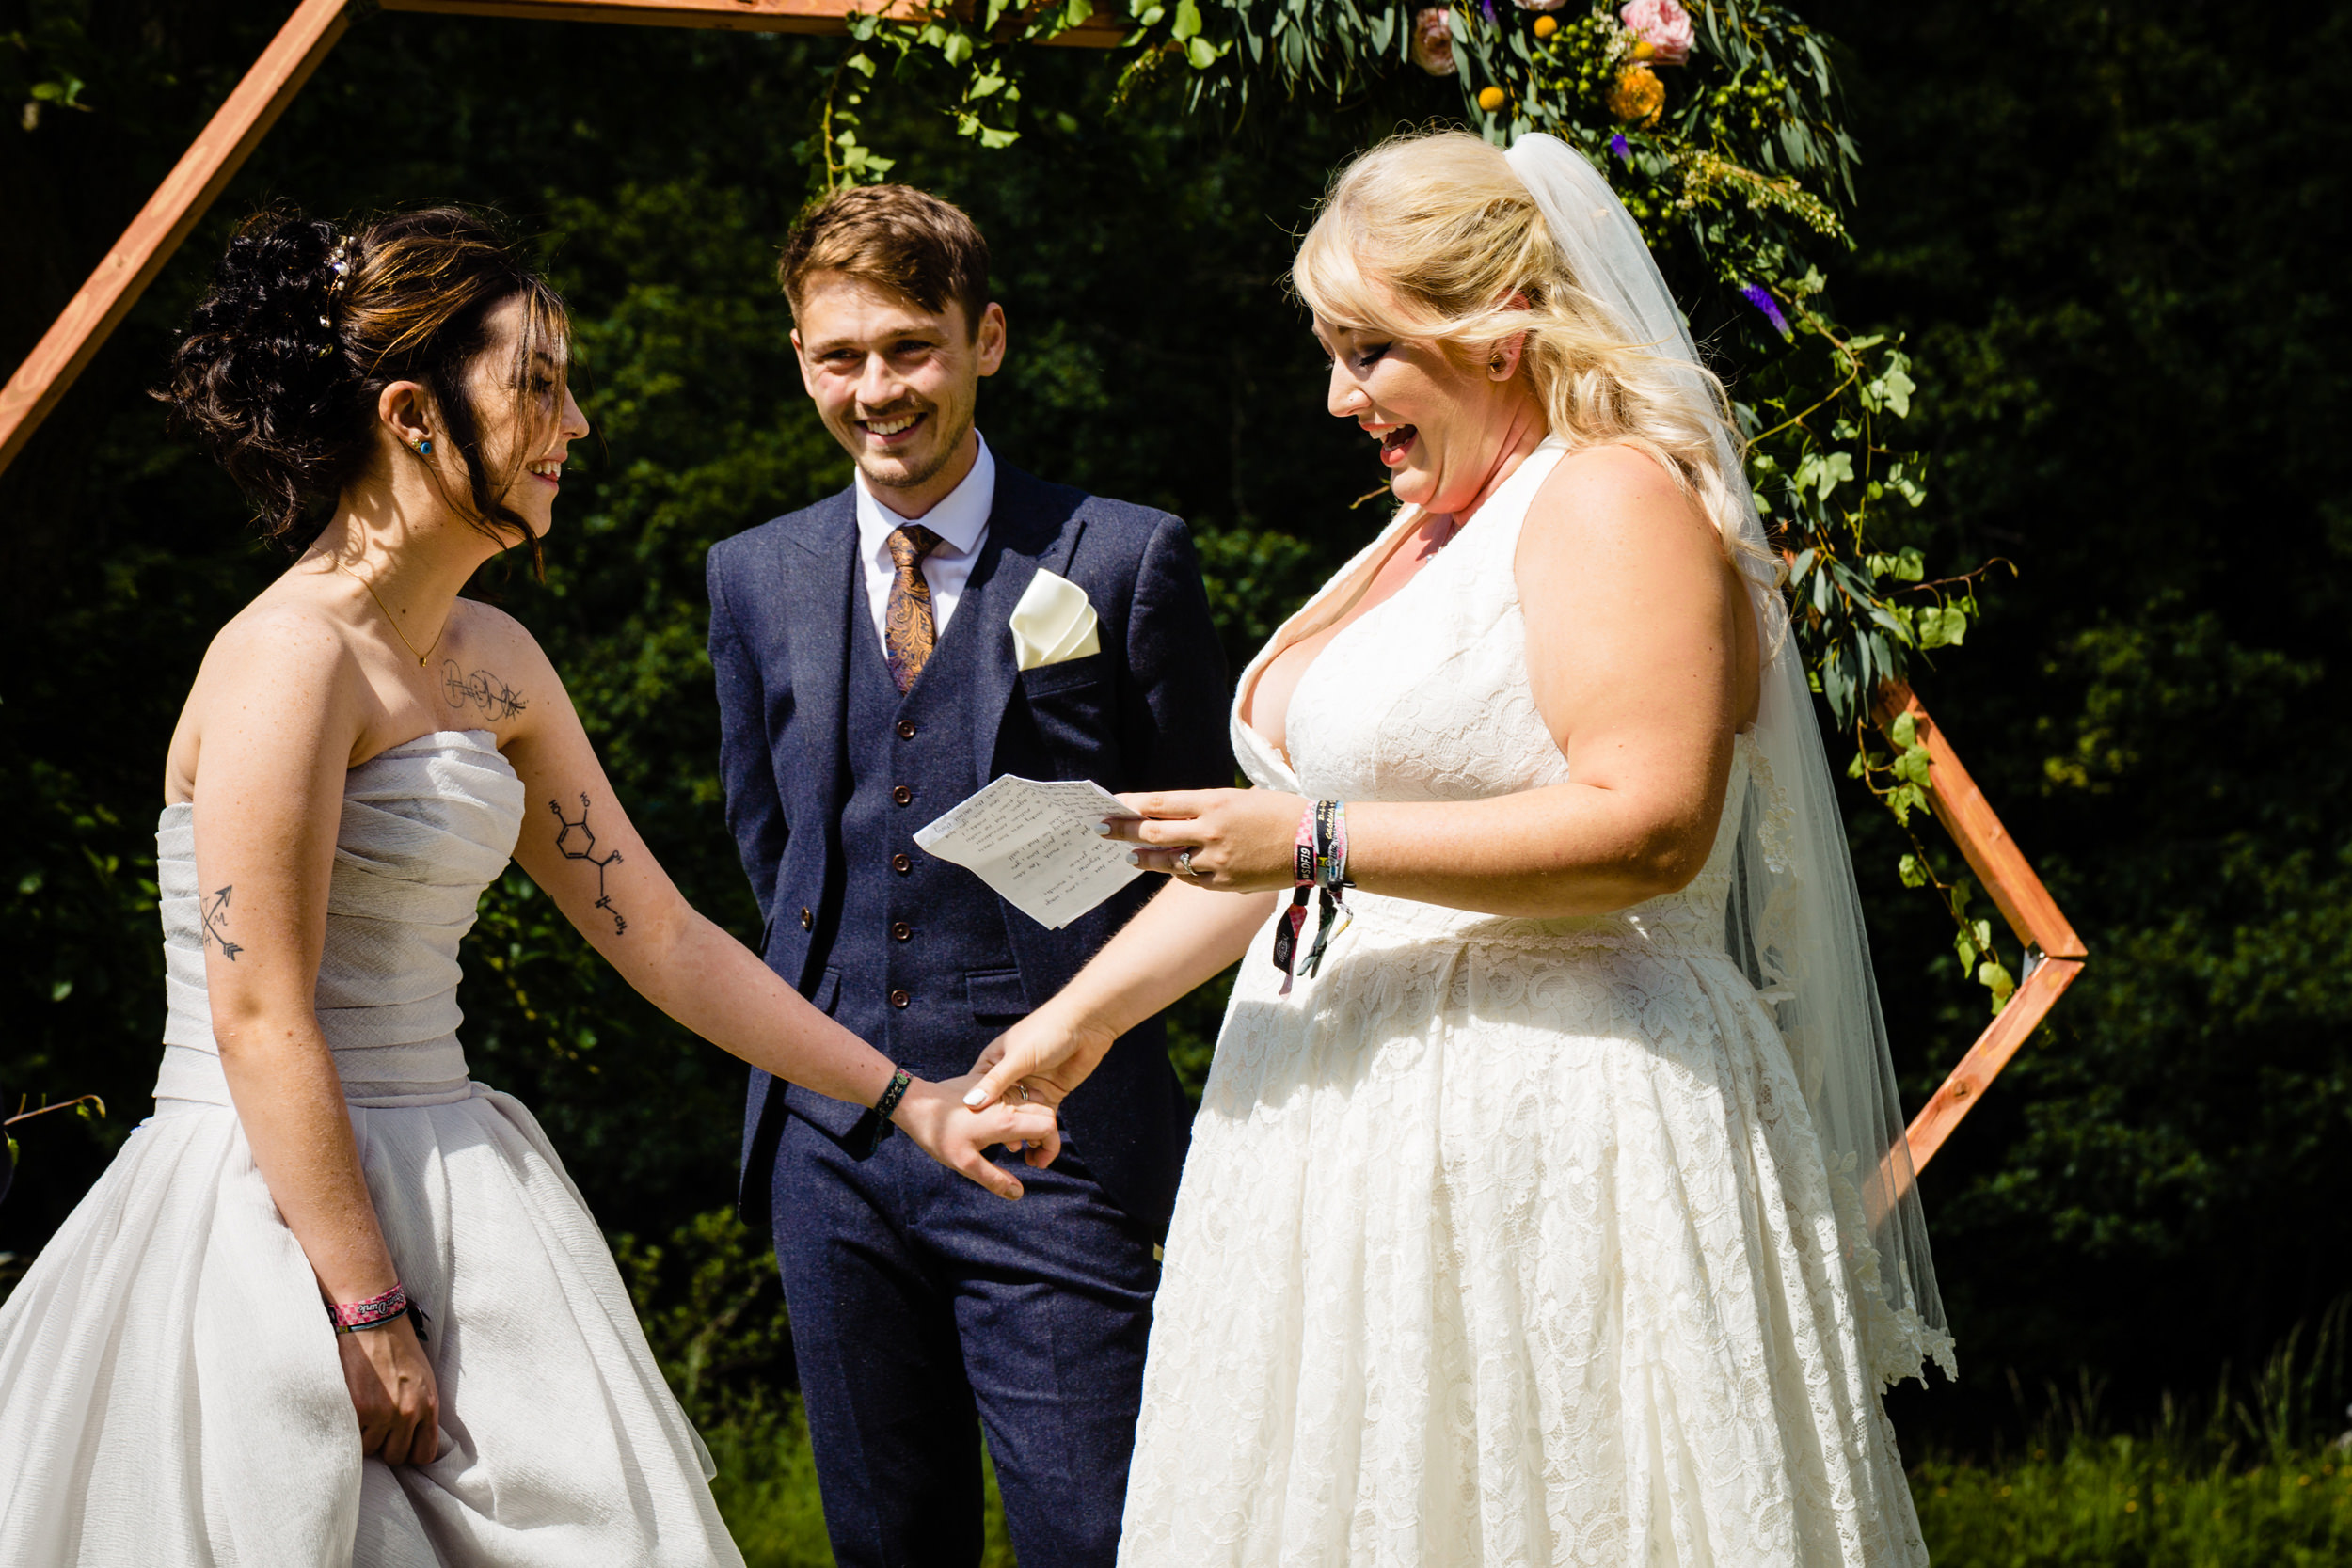 brides laughing as they exchange vows. plough inn, hathersage wedding photography by emma and rich.